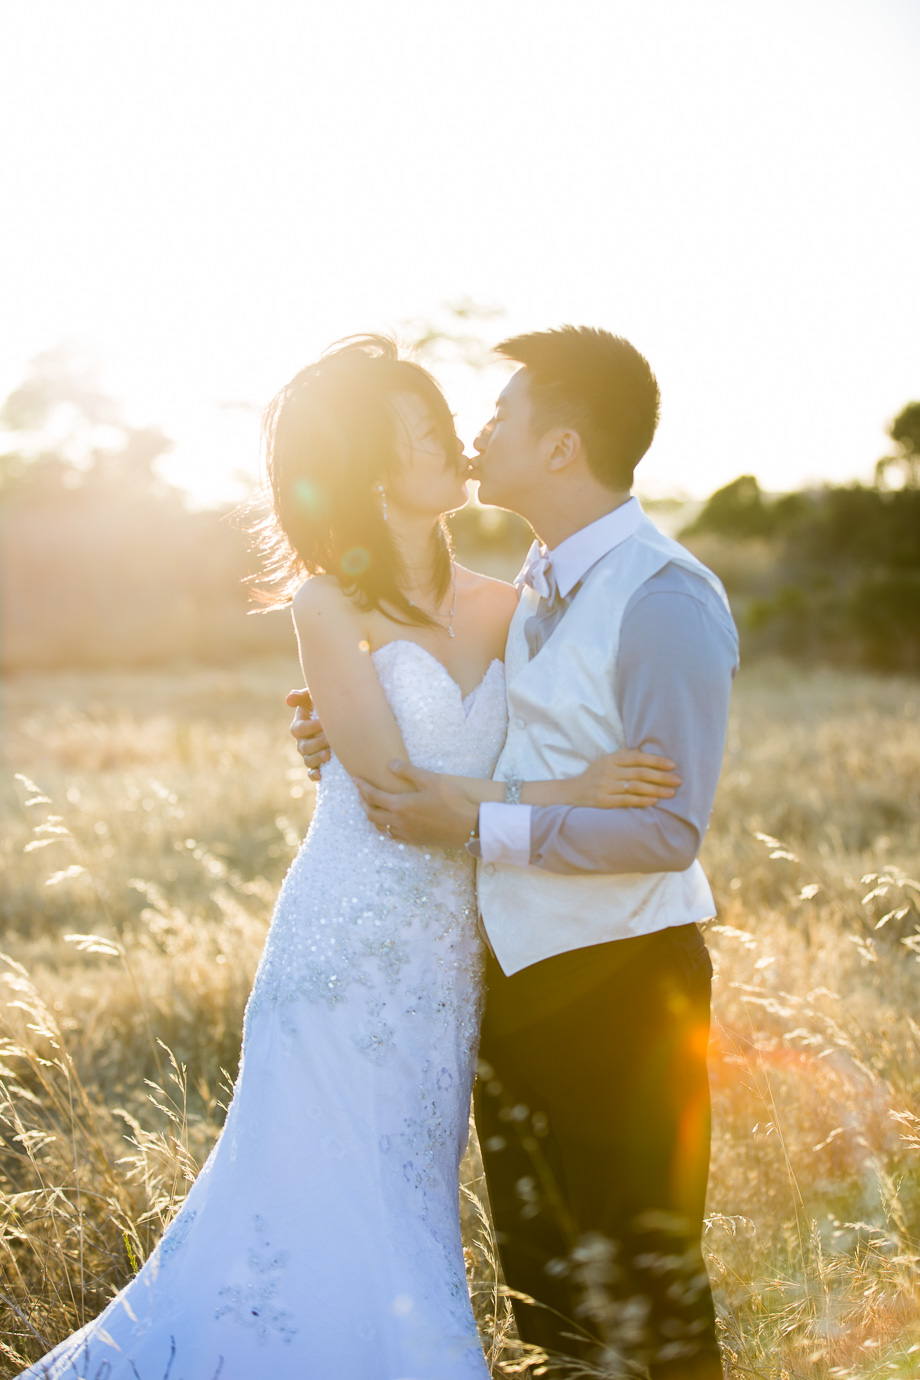 soft romantic portrait of the couple kissing in a grassy field with warm sun flare shining on them